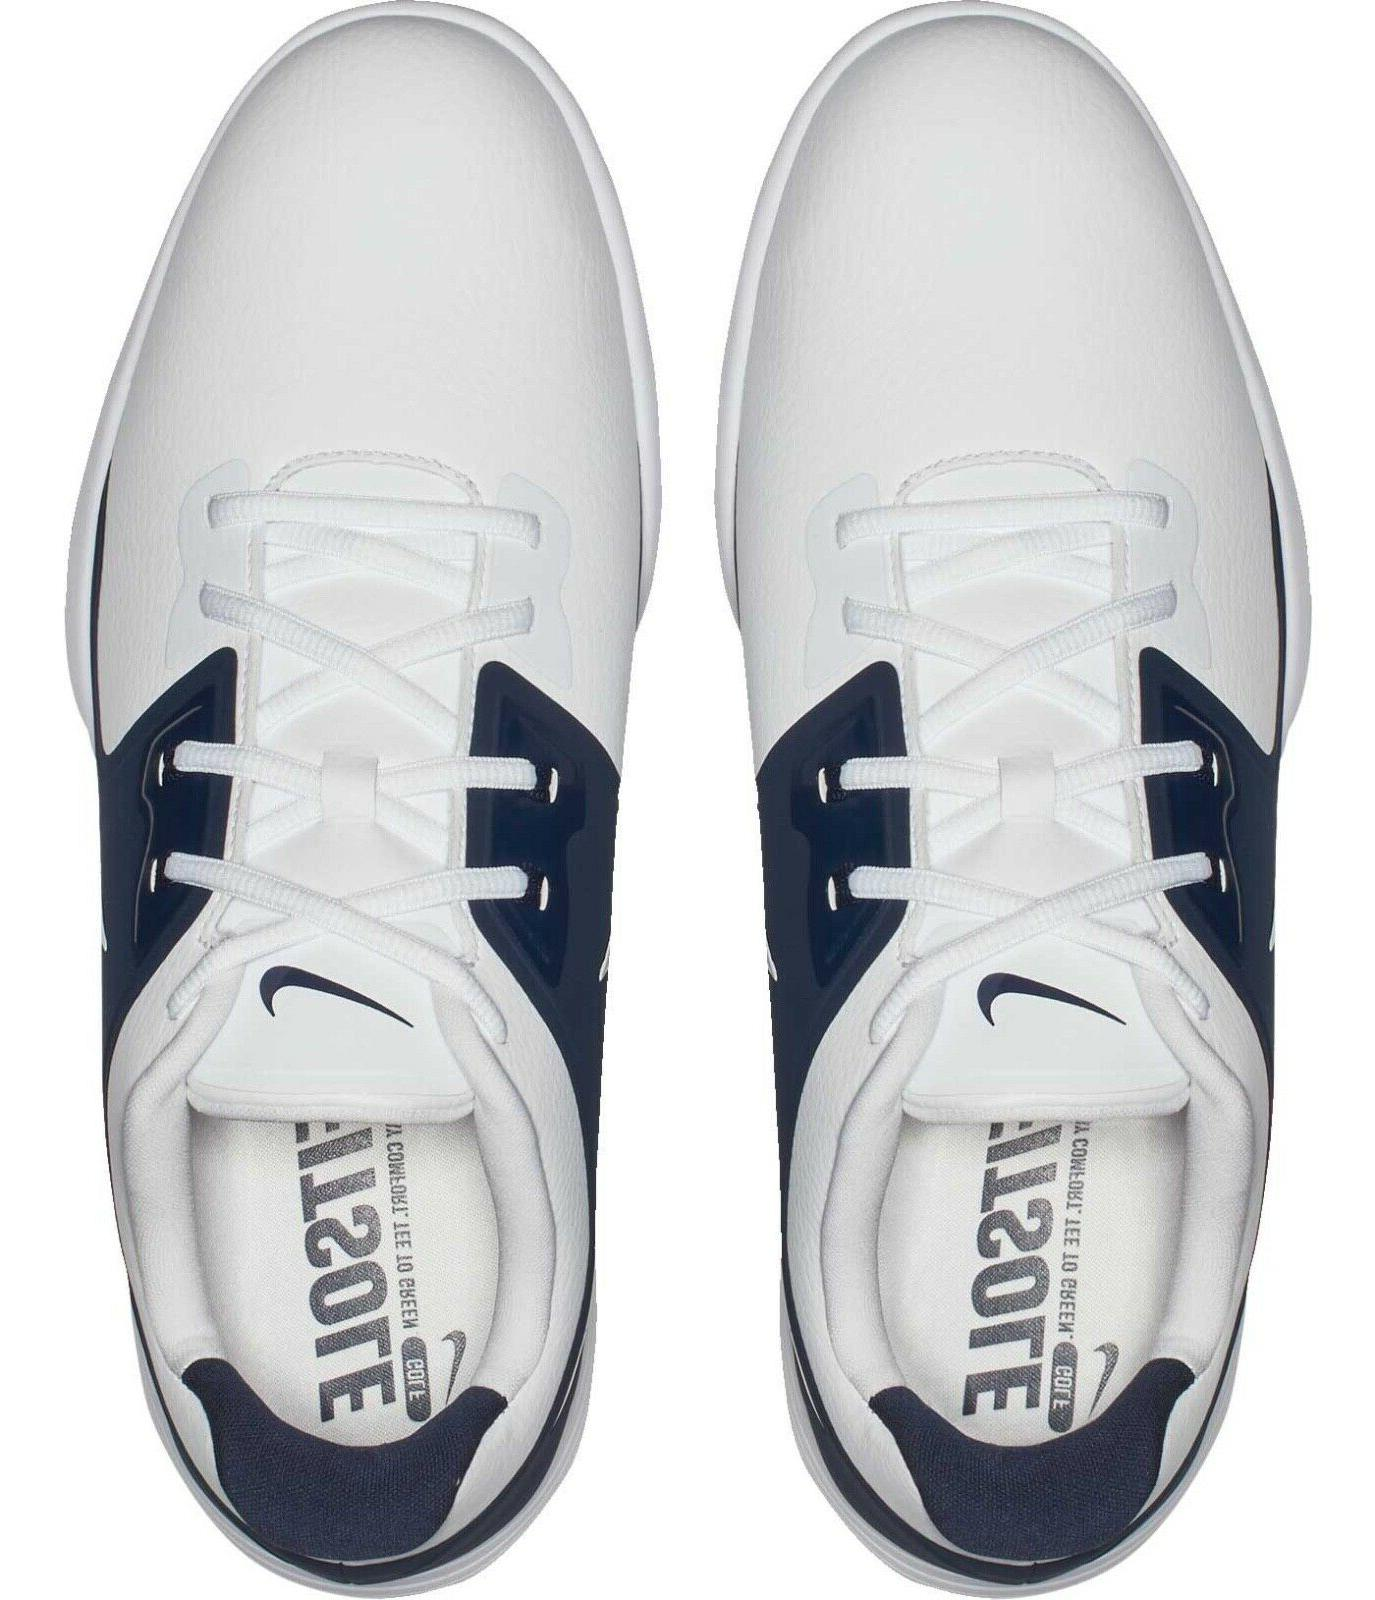 NEW PRO Wide Men's Golf Shoes White